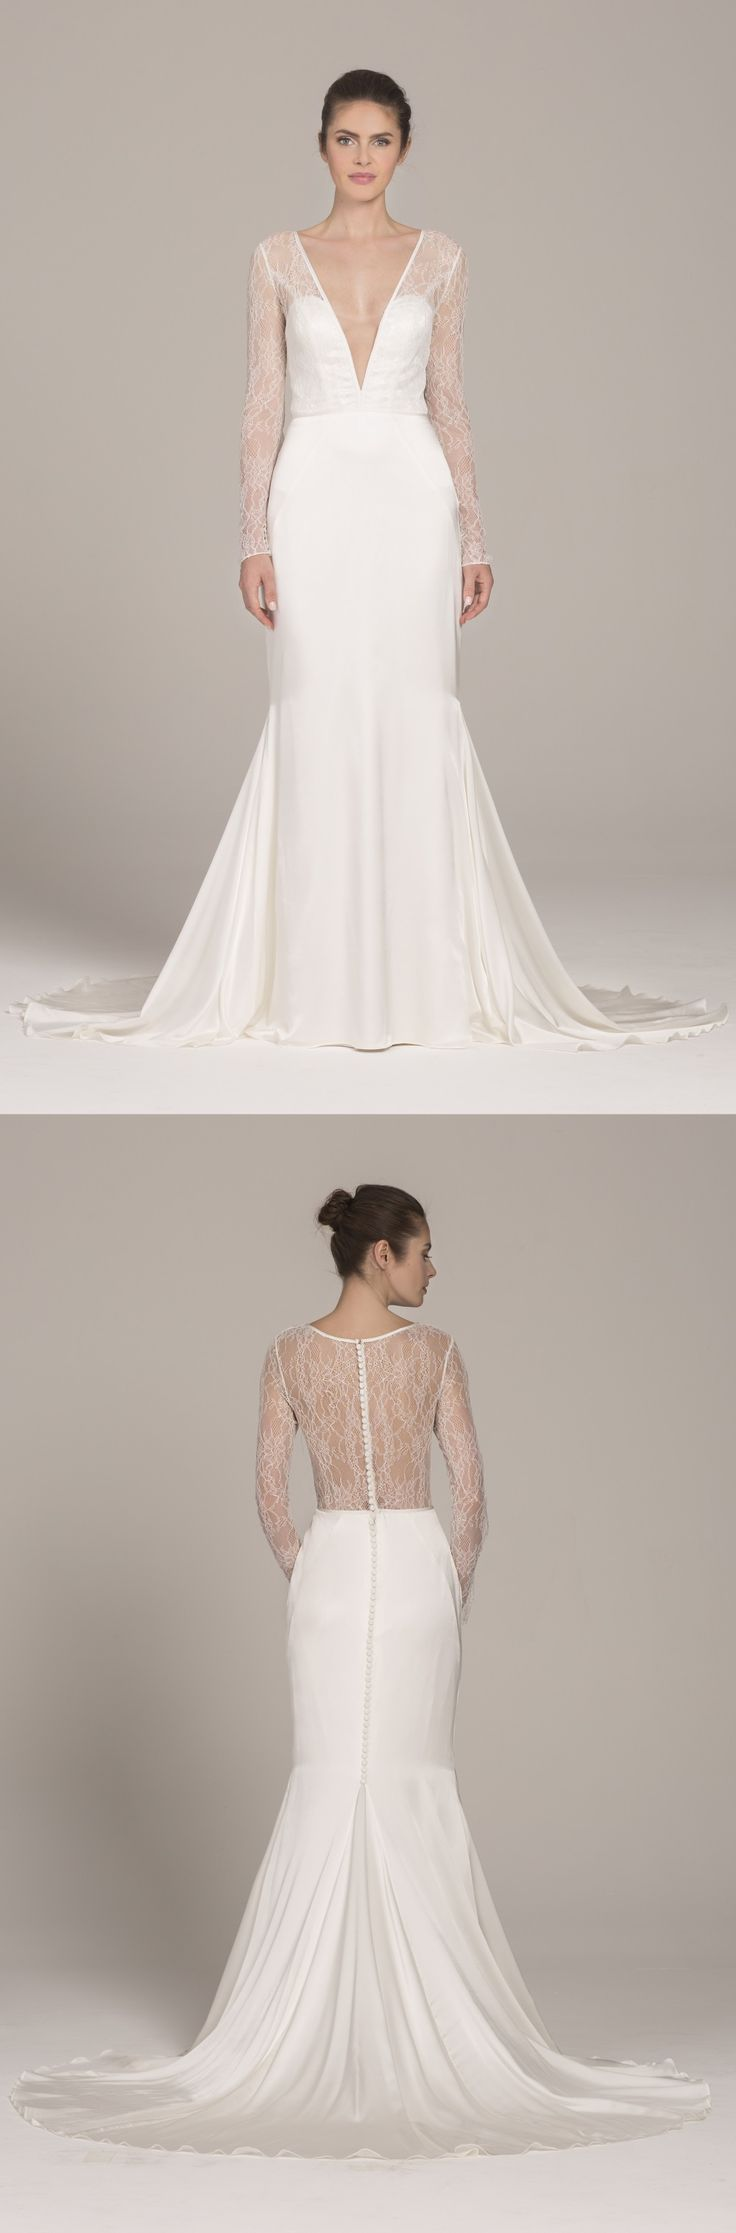 Portia wedding dress by Kelly Faetanini in Ivory // Chantilly lace long sleeve gown with silk stretch satin skirt and plunging neckline #weddingdress